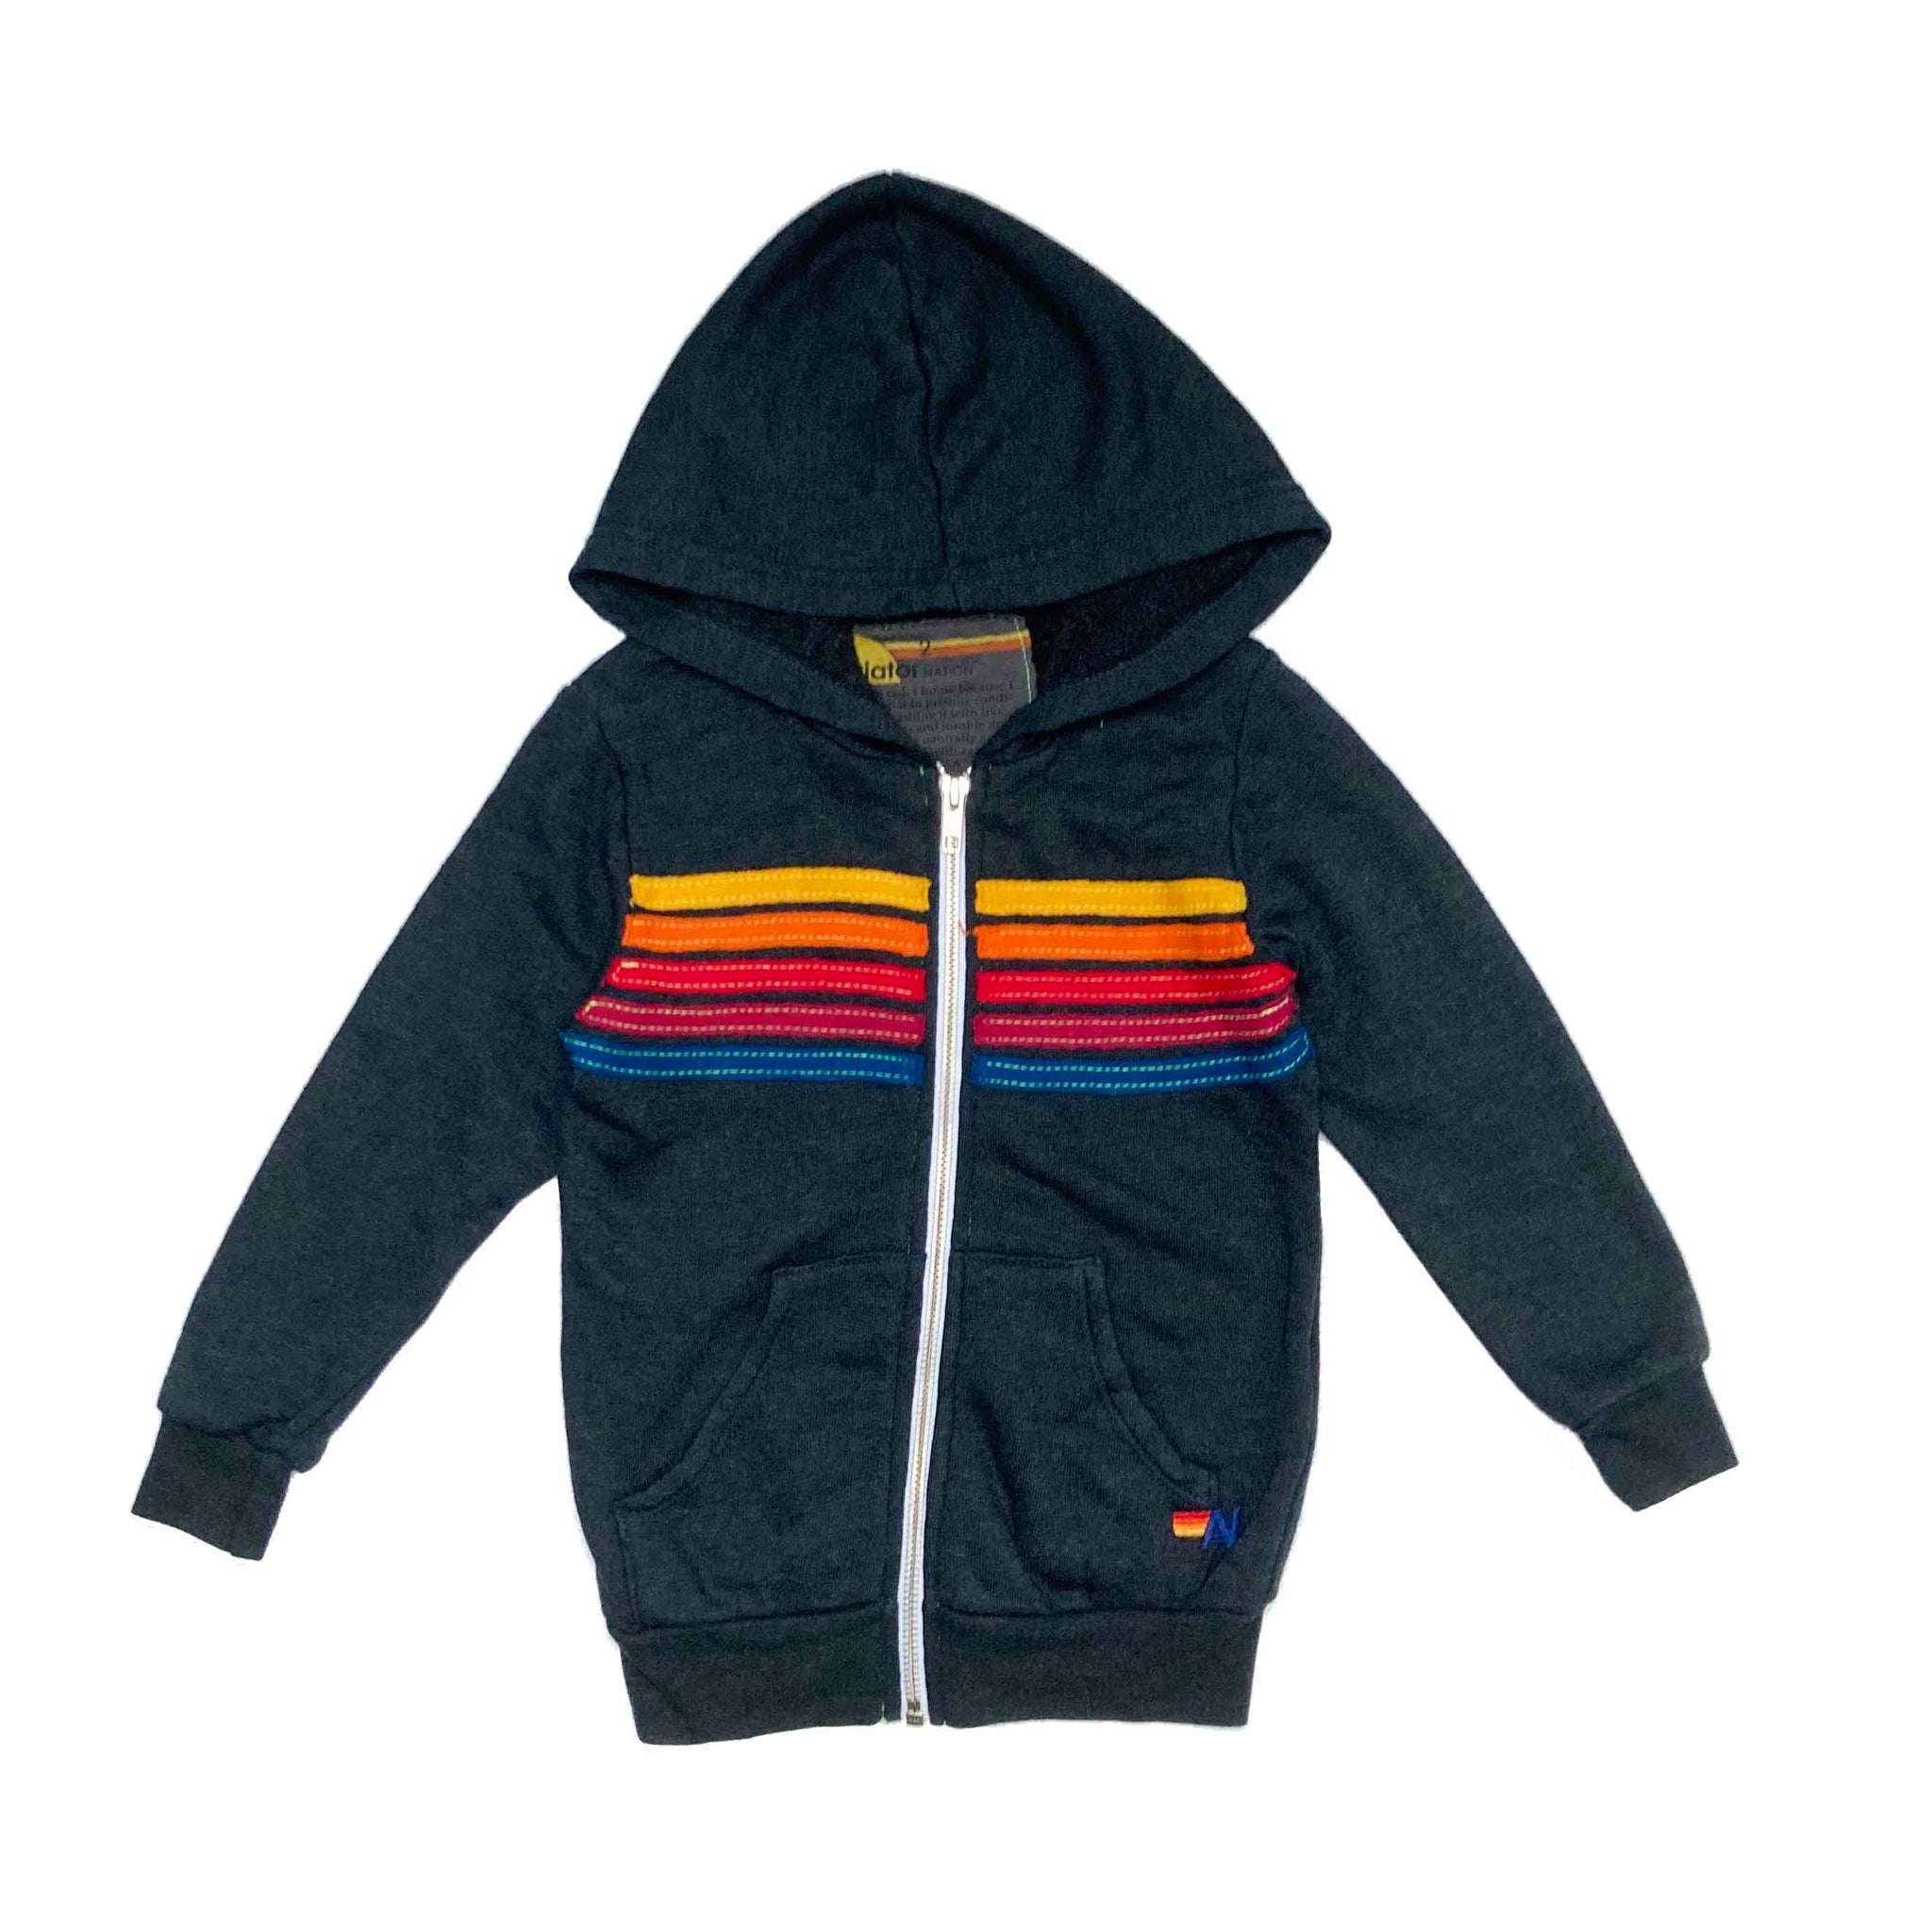 AVIATOR NATION NAVY ZIP UP 2-3 YEARS